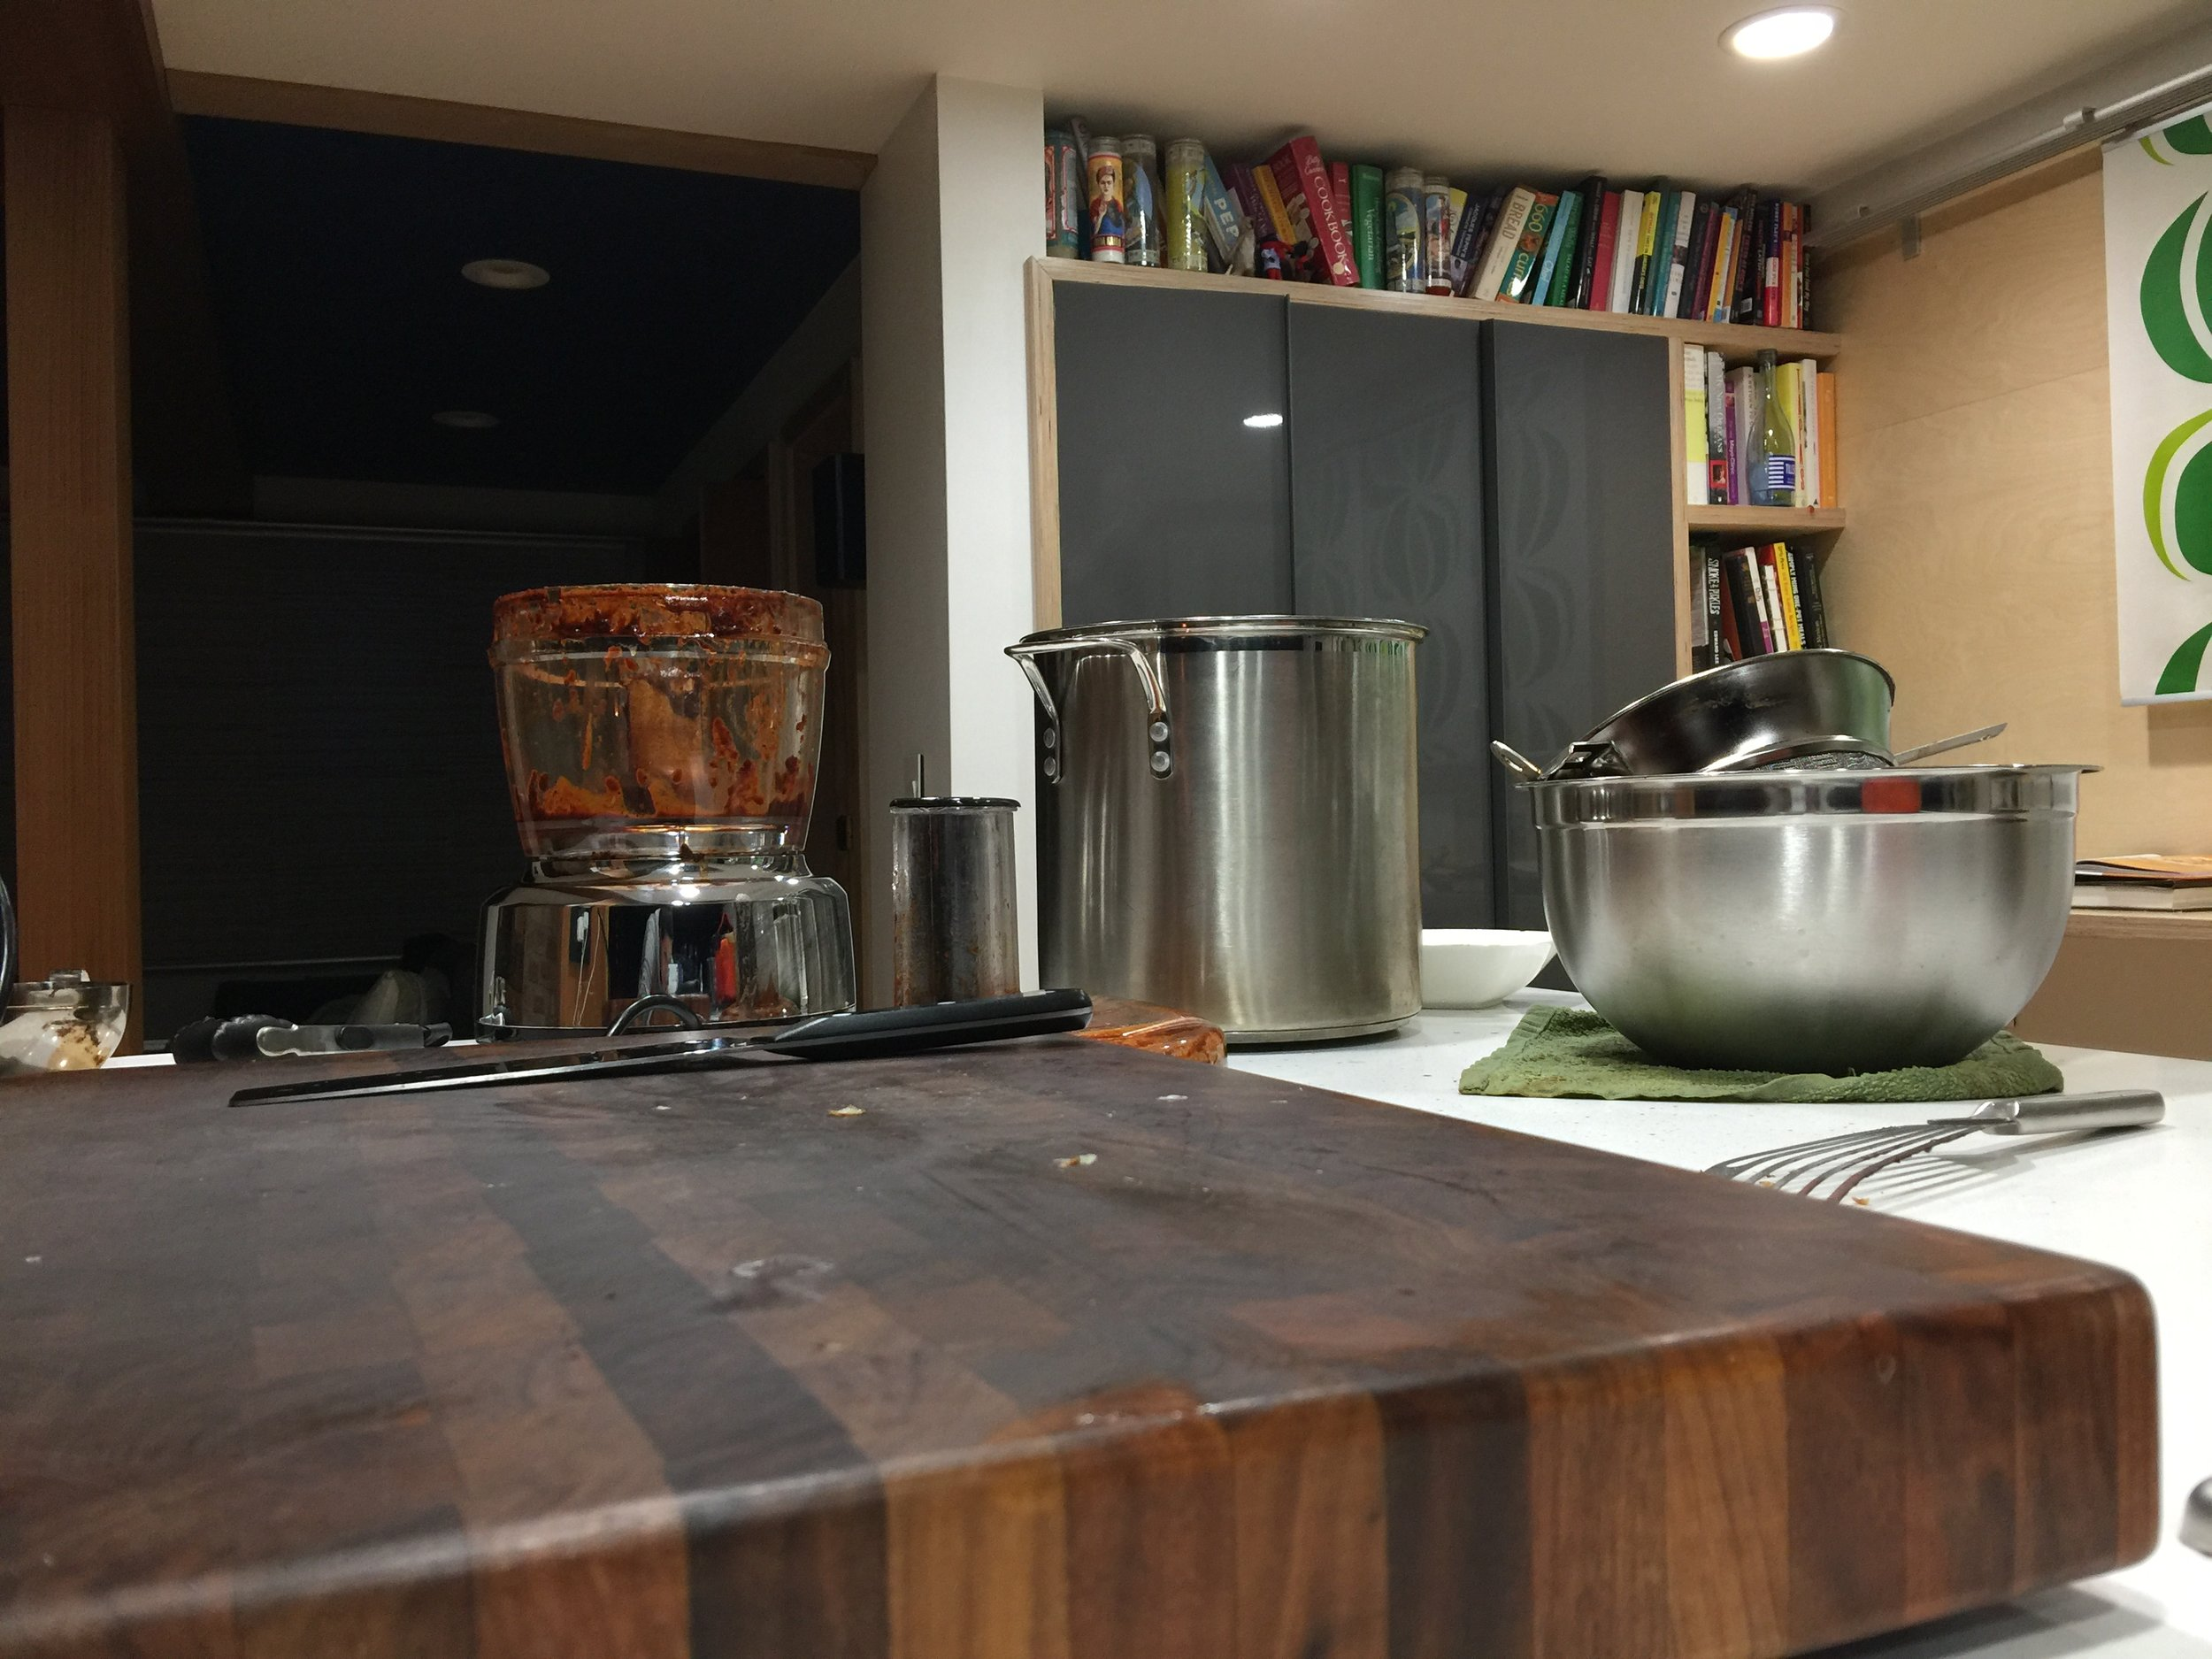 My kitchen and my favorite built-in bookshelves that my husband Todd made for me. I am making mole.